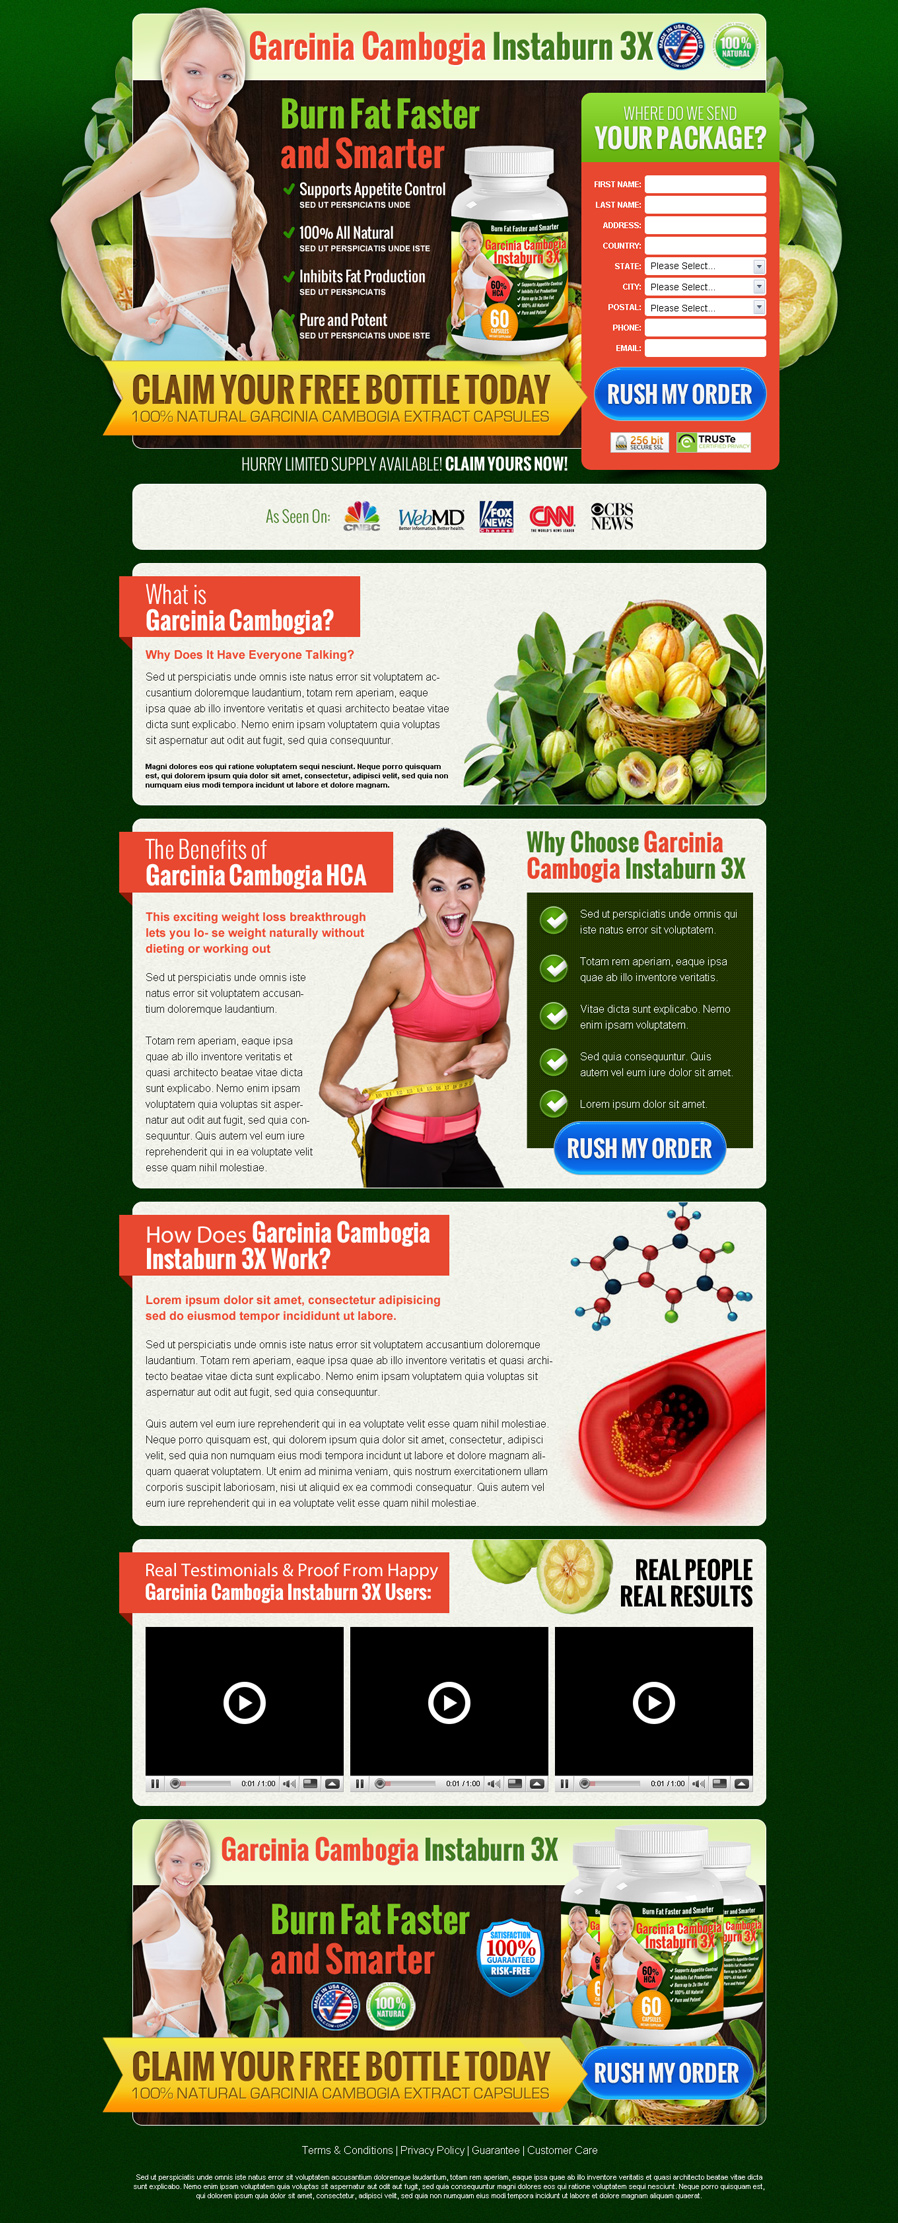 burn fat faster and smarter